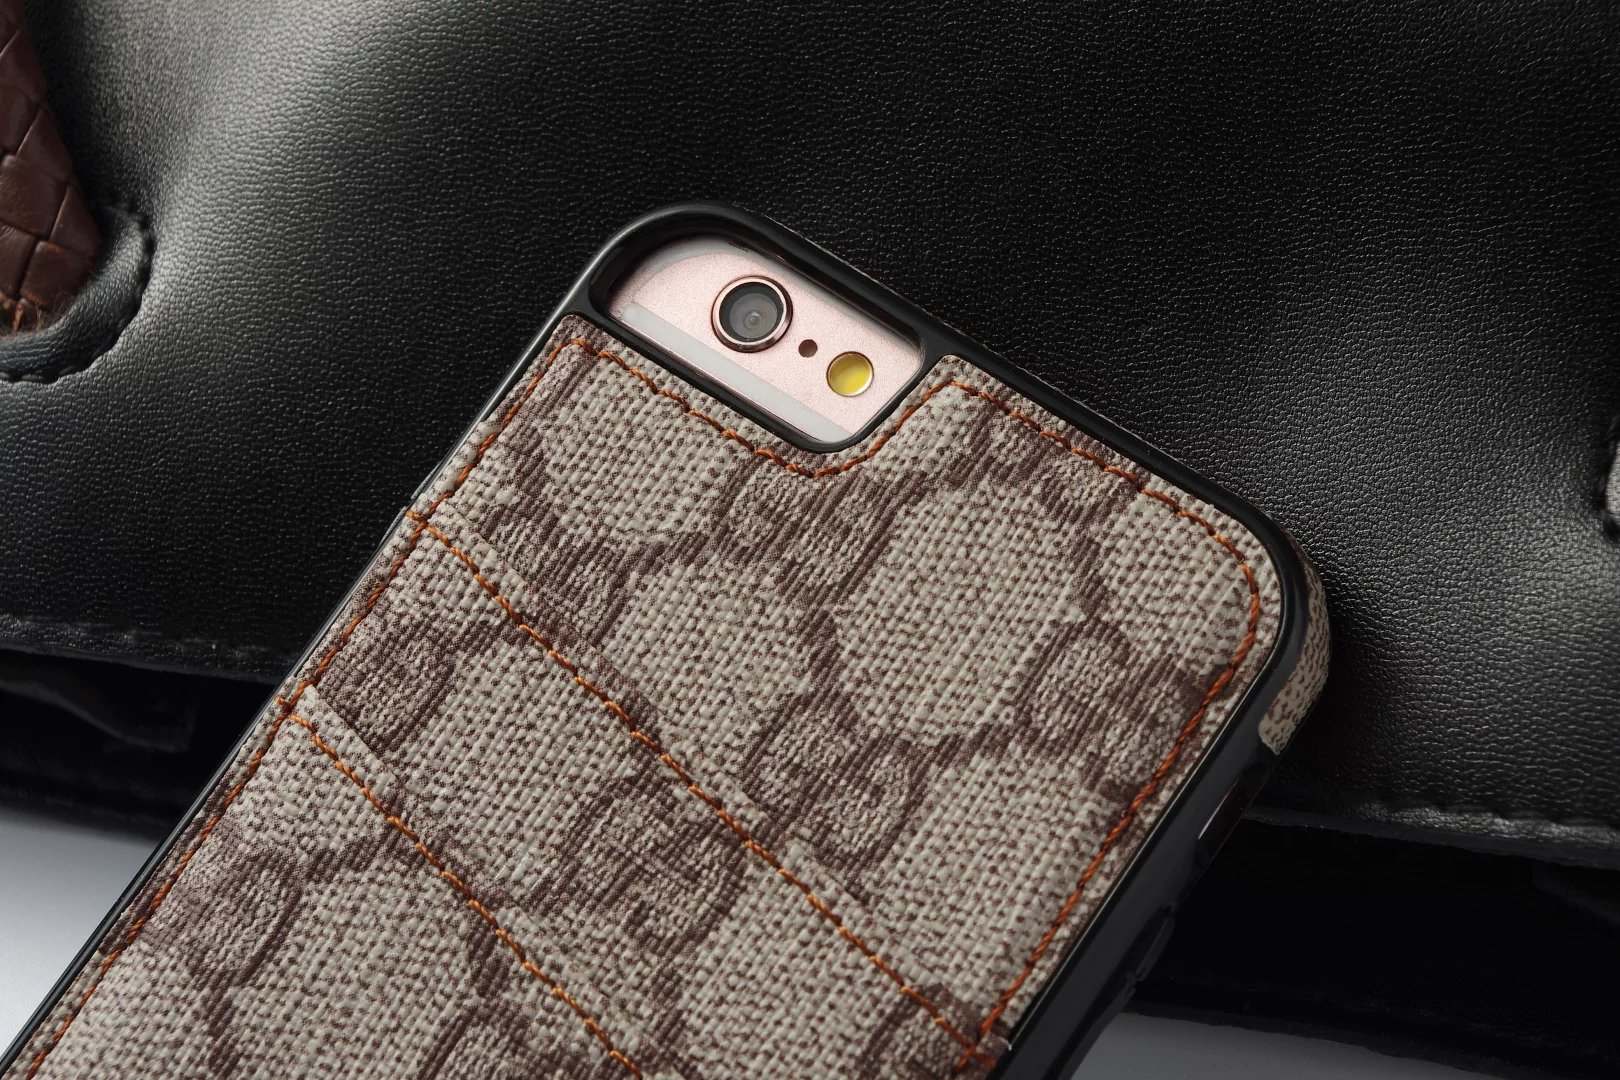 8 iphone case cover of iphone 8 Louis Vuitton iphone 8 case i phone 6 cover design your own cell phone case cheap cell phone cases apple case custom cell phone covers mophie battery life